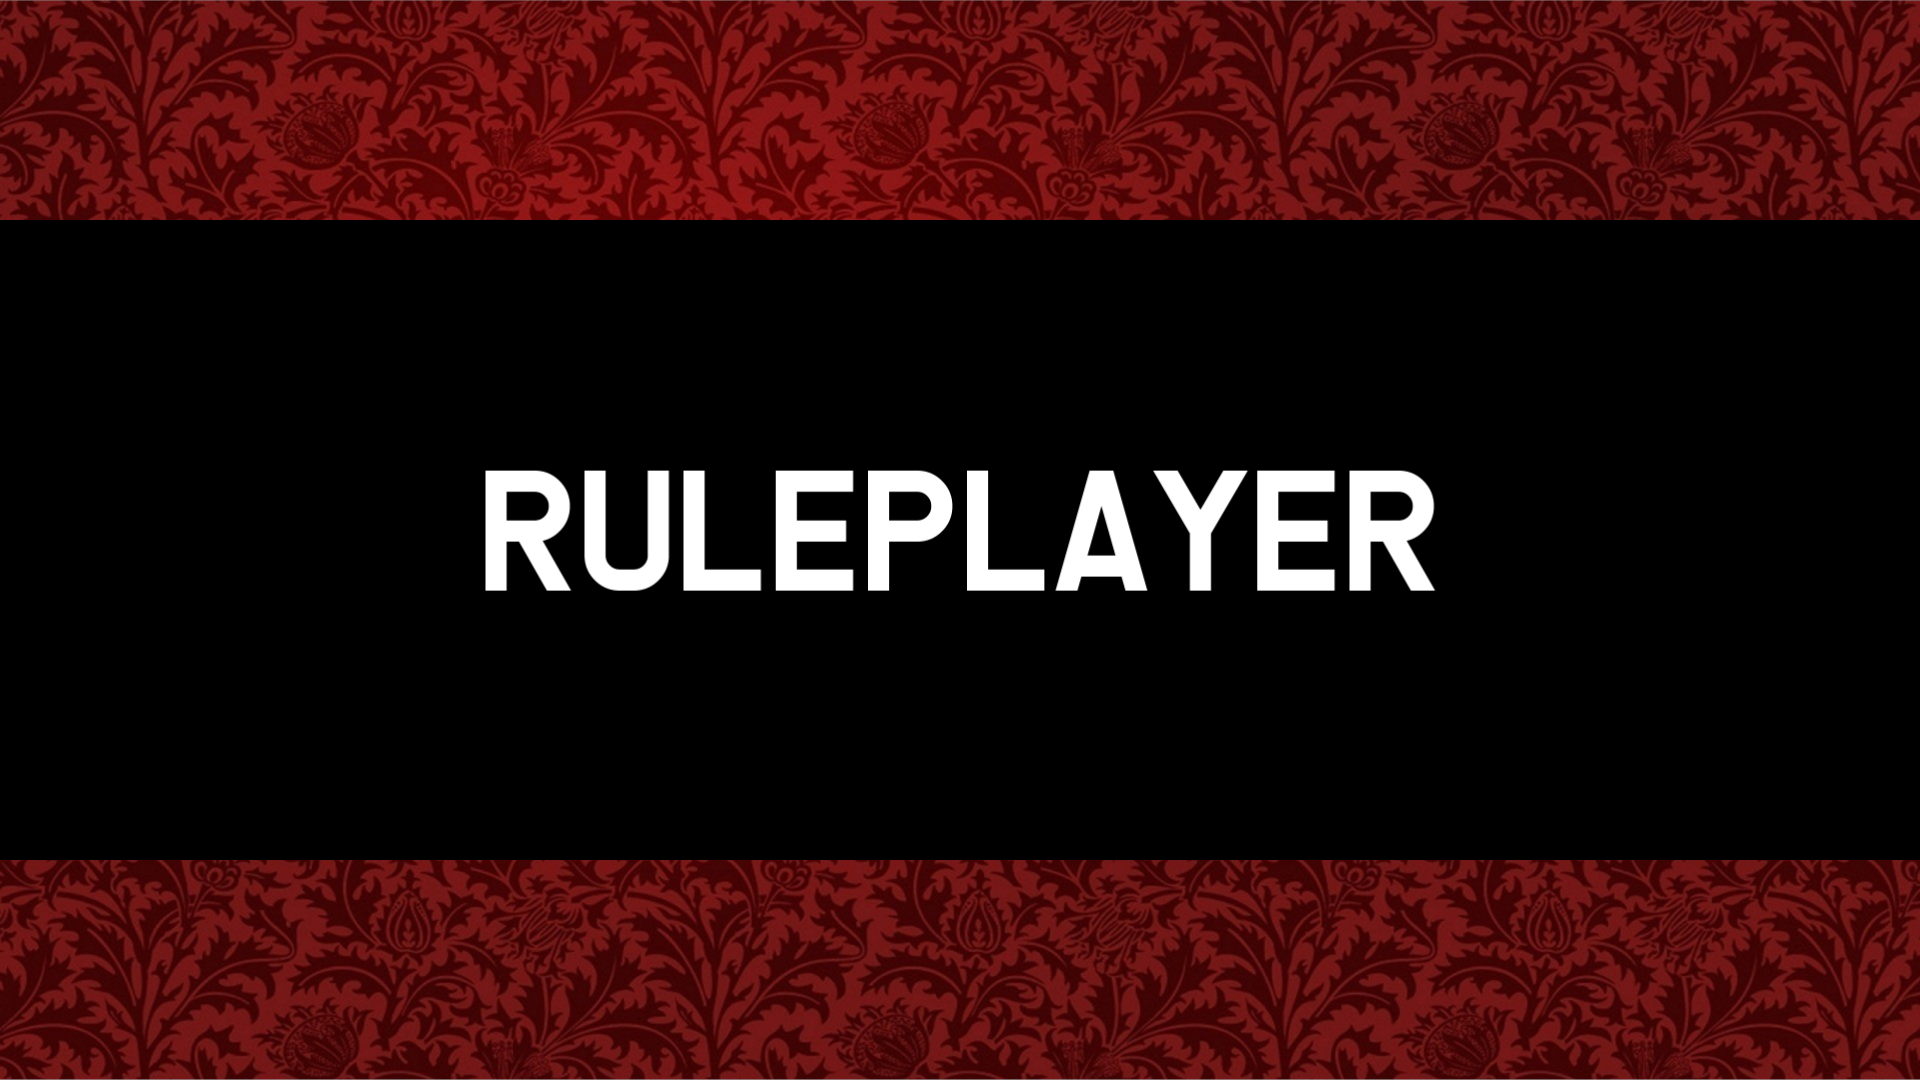 ruleplayer.png.97faa01baceae609e0d4ae7a6f86ee05.png